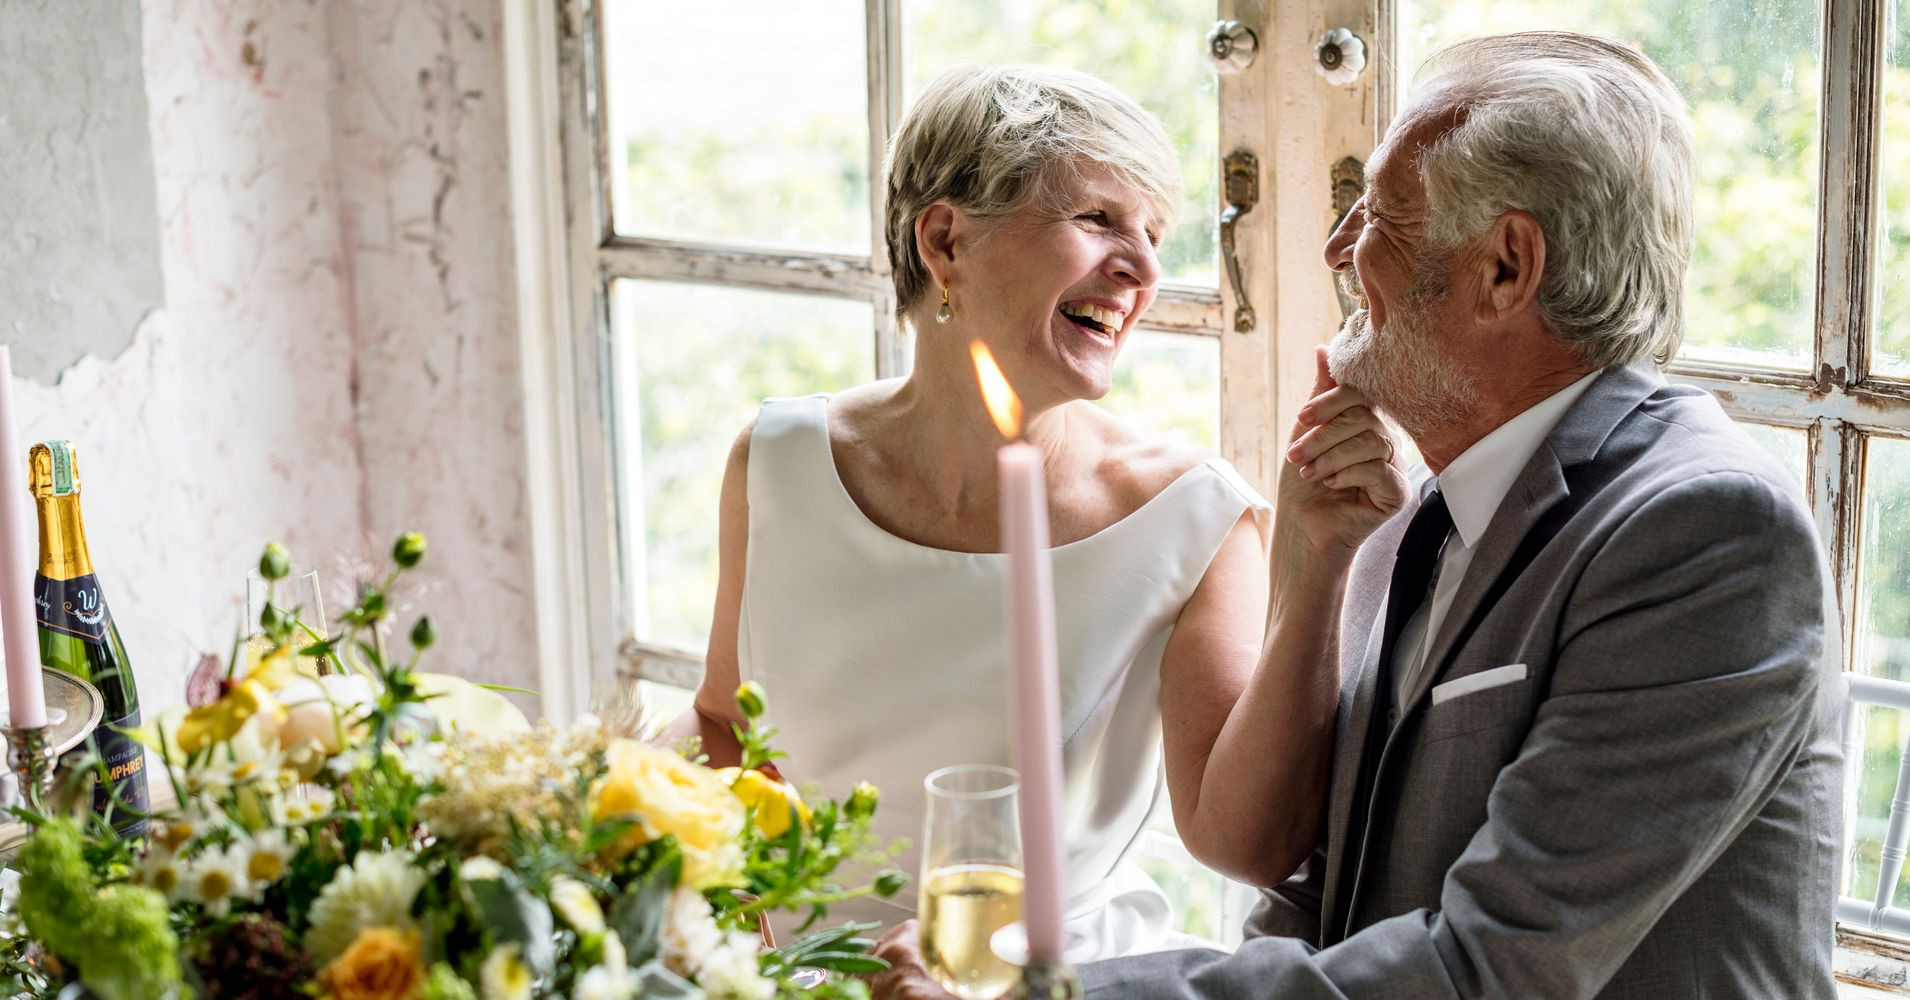 Best ideas about Wedding Gift Ideas For Older Couples . Save or Pin 27 Wedding Gifts For Older Couples Marrying The Second Now.